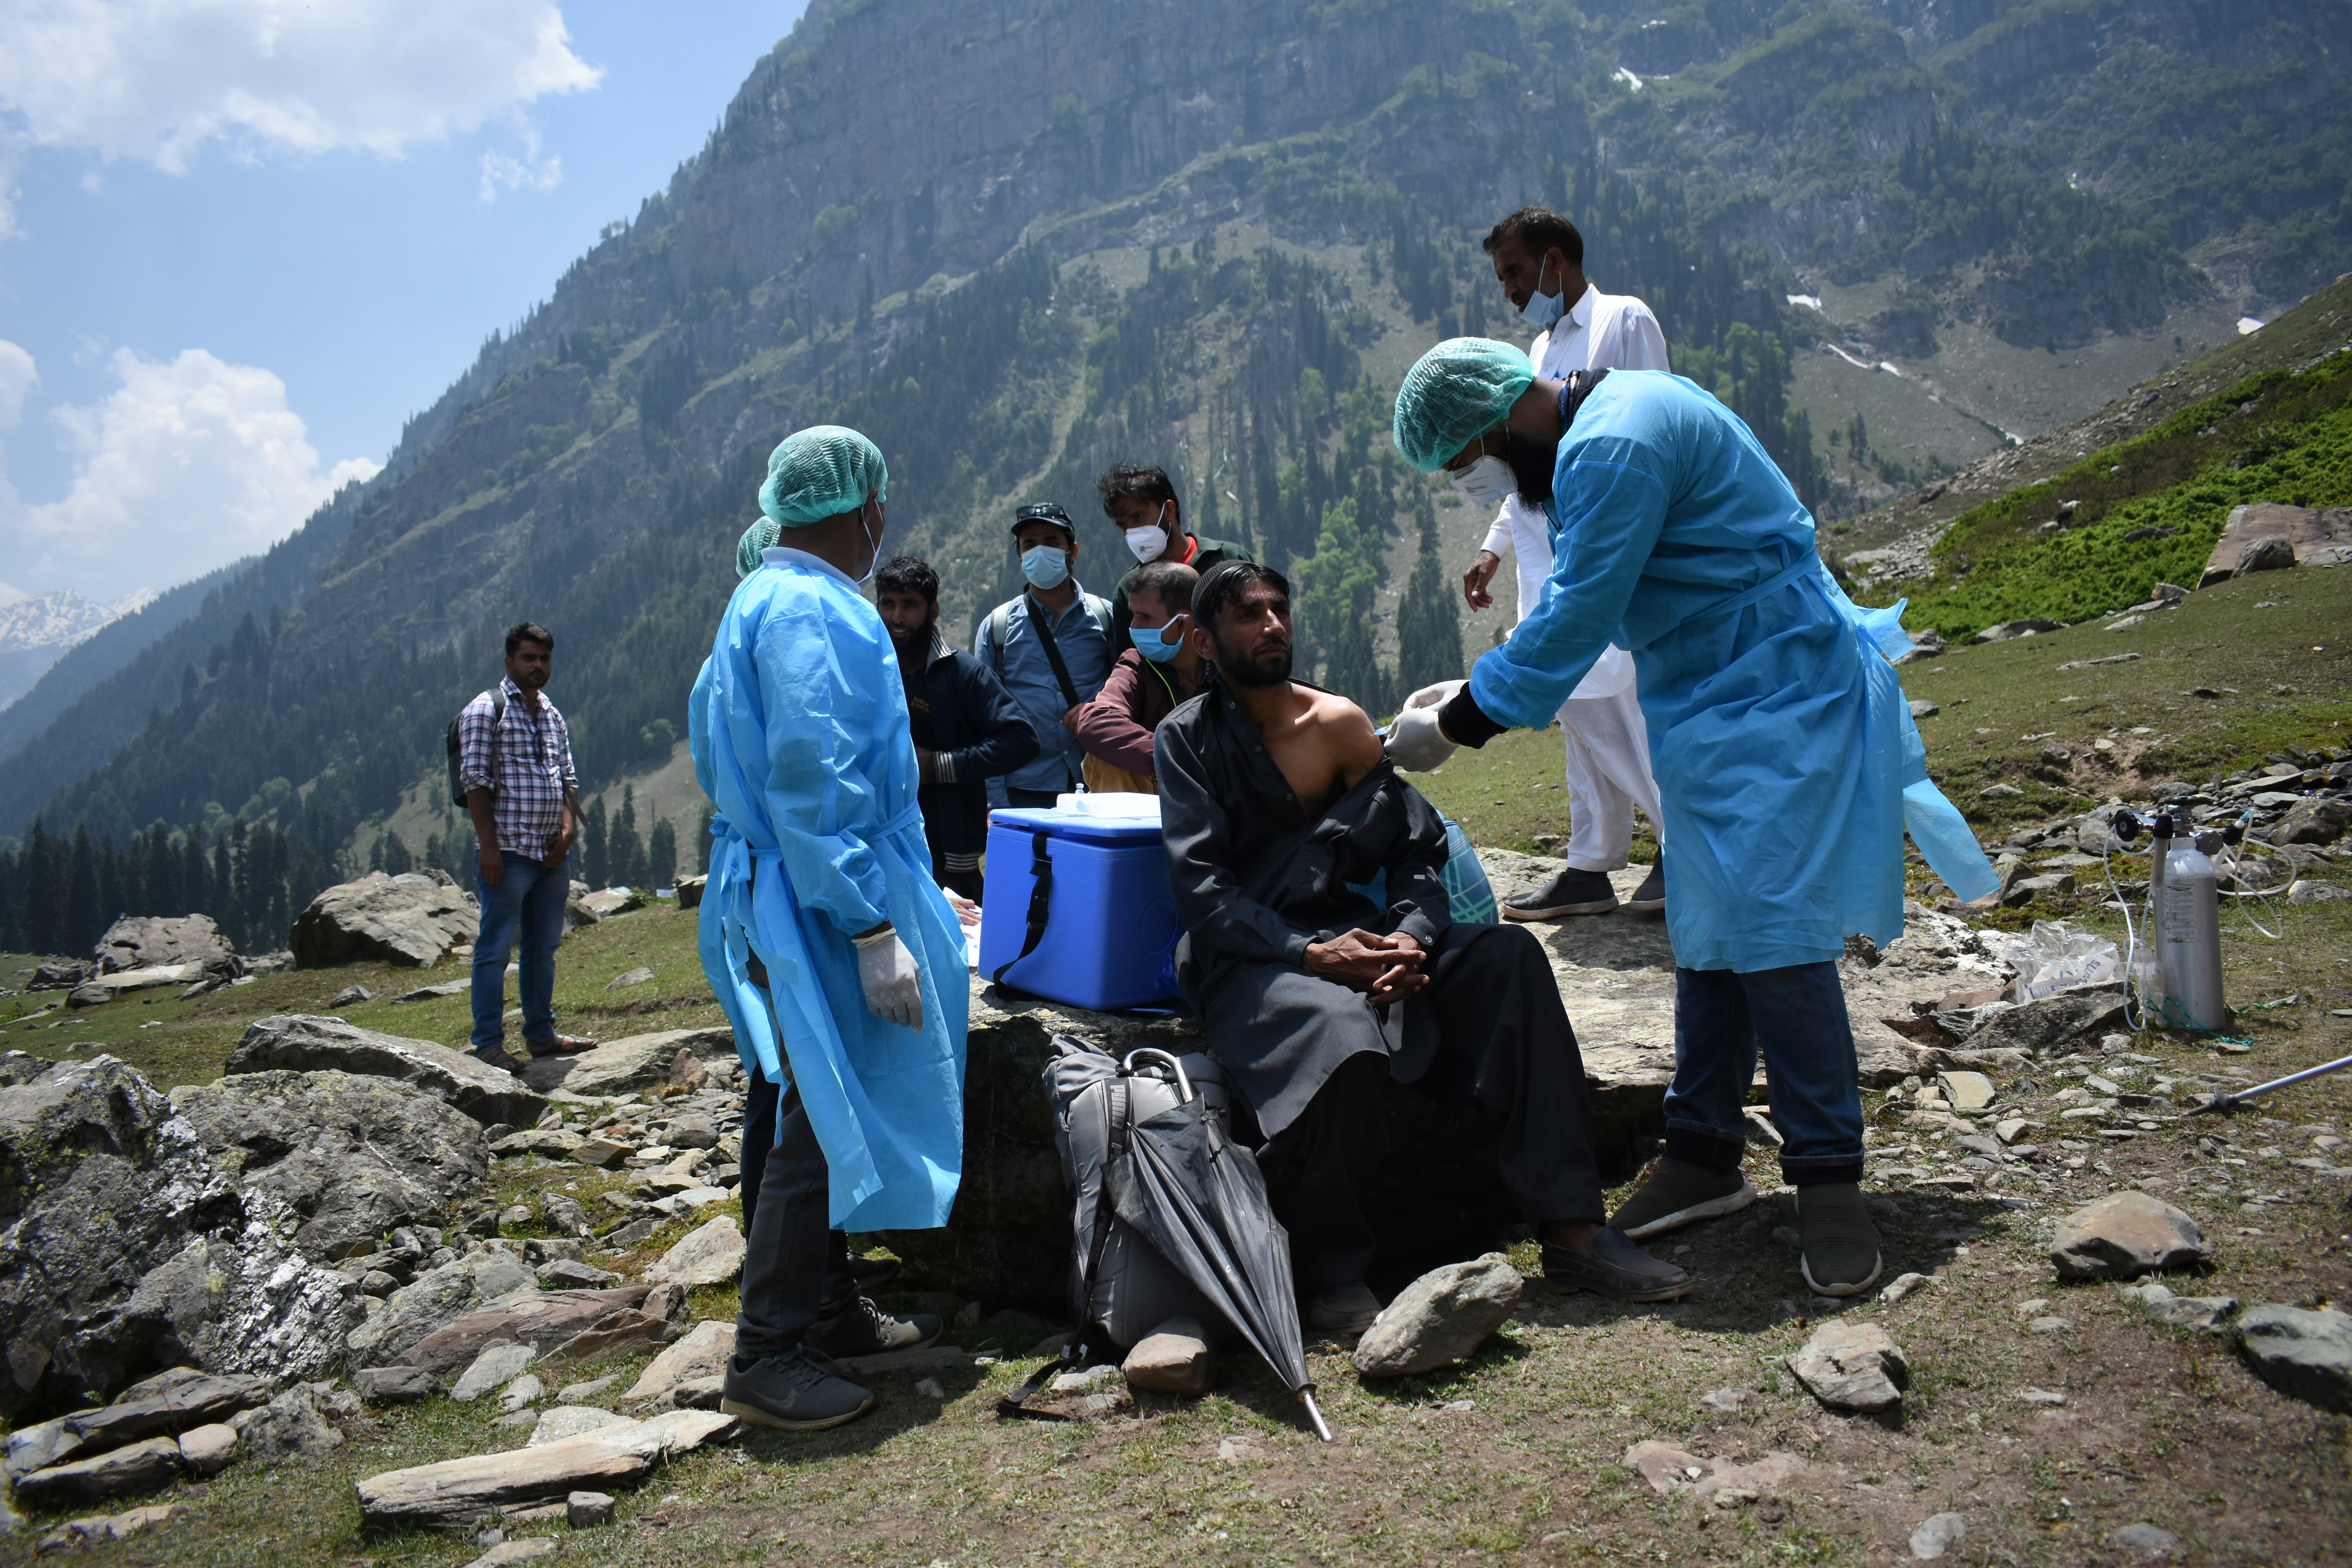 A healthcare worker administers a dose of COVISHIELD, a coronavirus disease (COVID-19) vaccine manufactured by Serum Institute of India, to a shepherd man during a vaccination drive at Lidderwat near scenic Pahalgam in south Kashmir's Anantnag district, June 10, 2021. Picture taken June 10, 2021. REUTERS/Sanna Irshad Mattoo